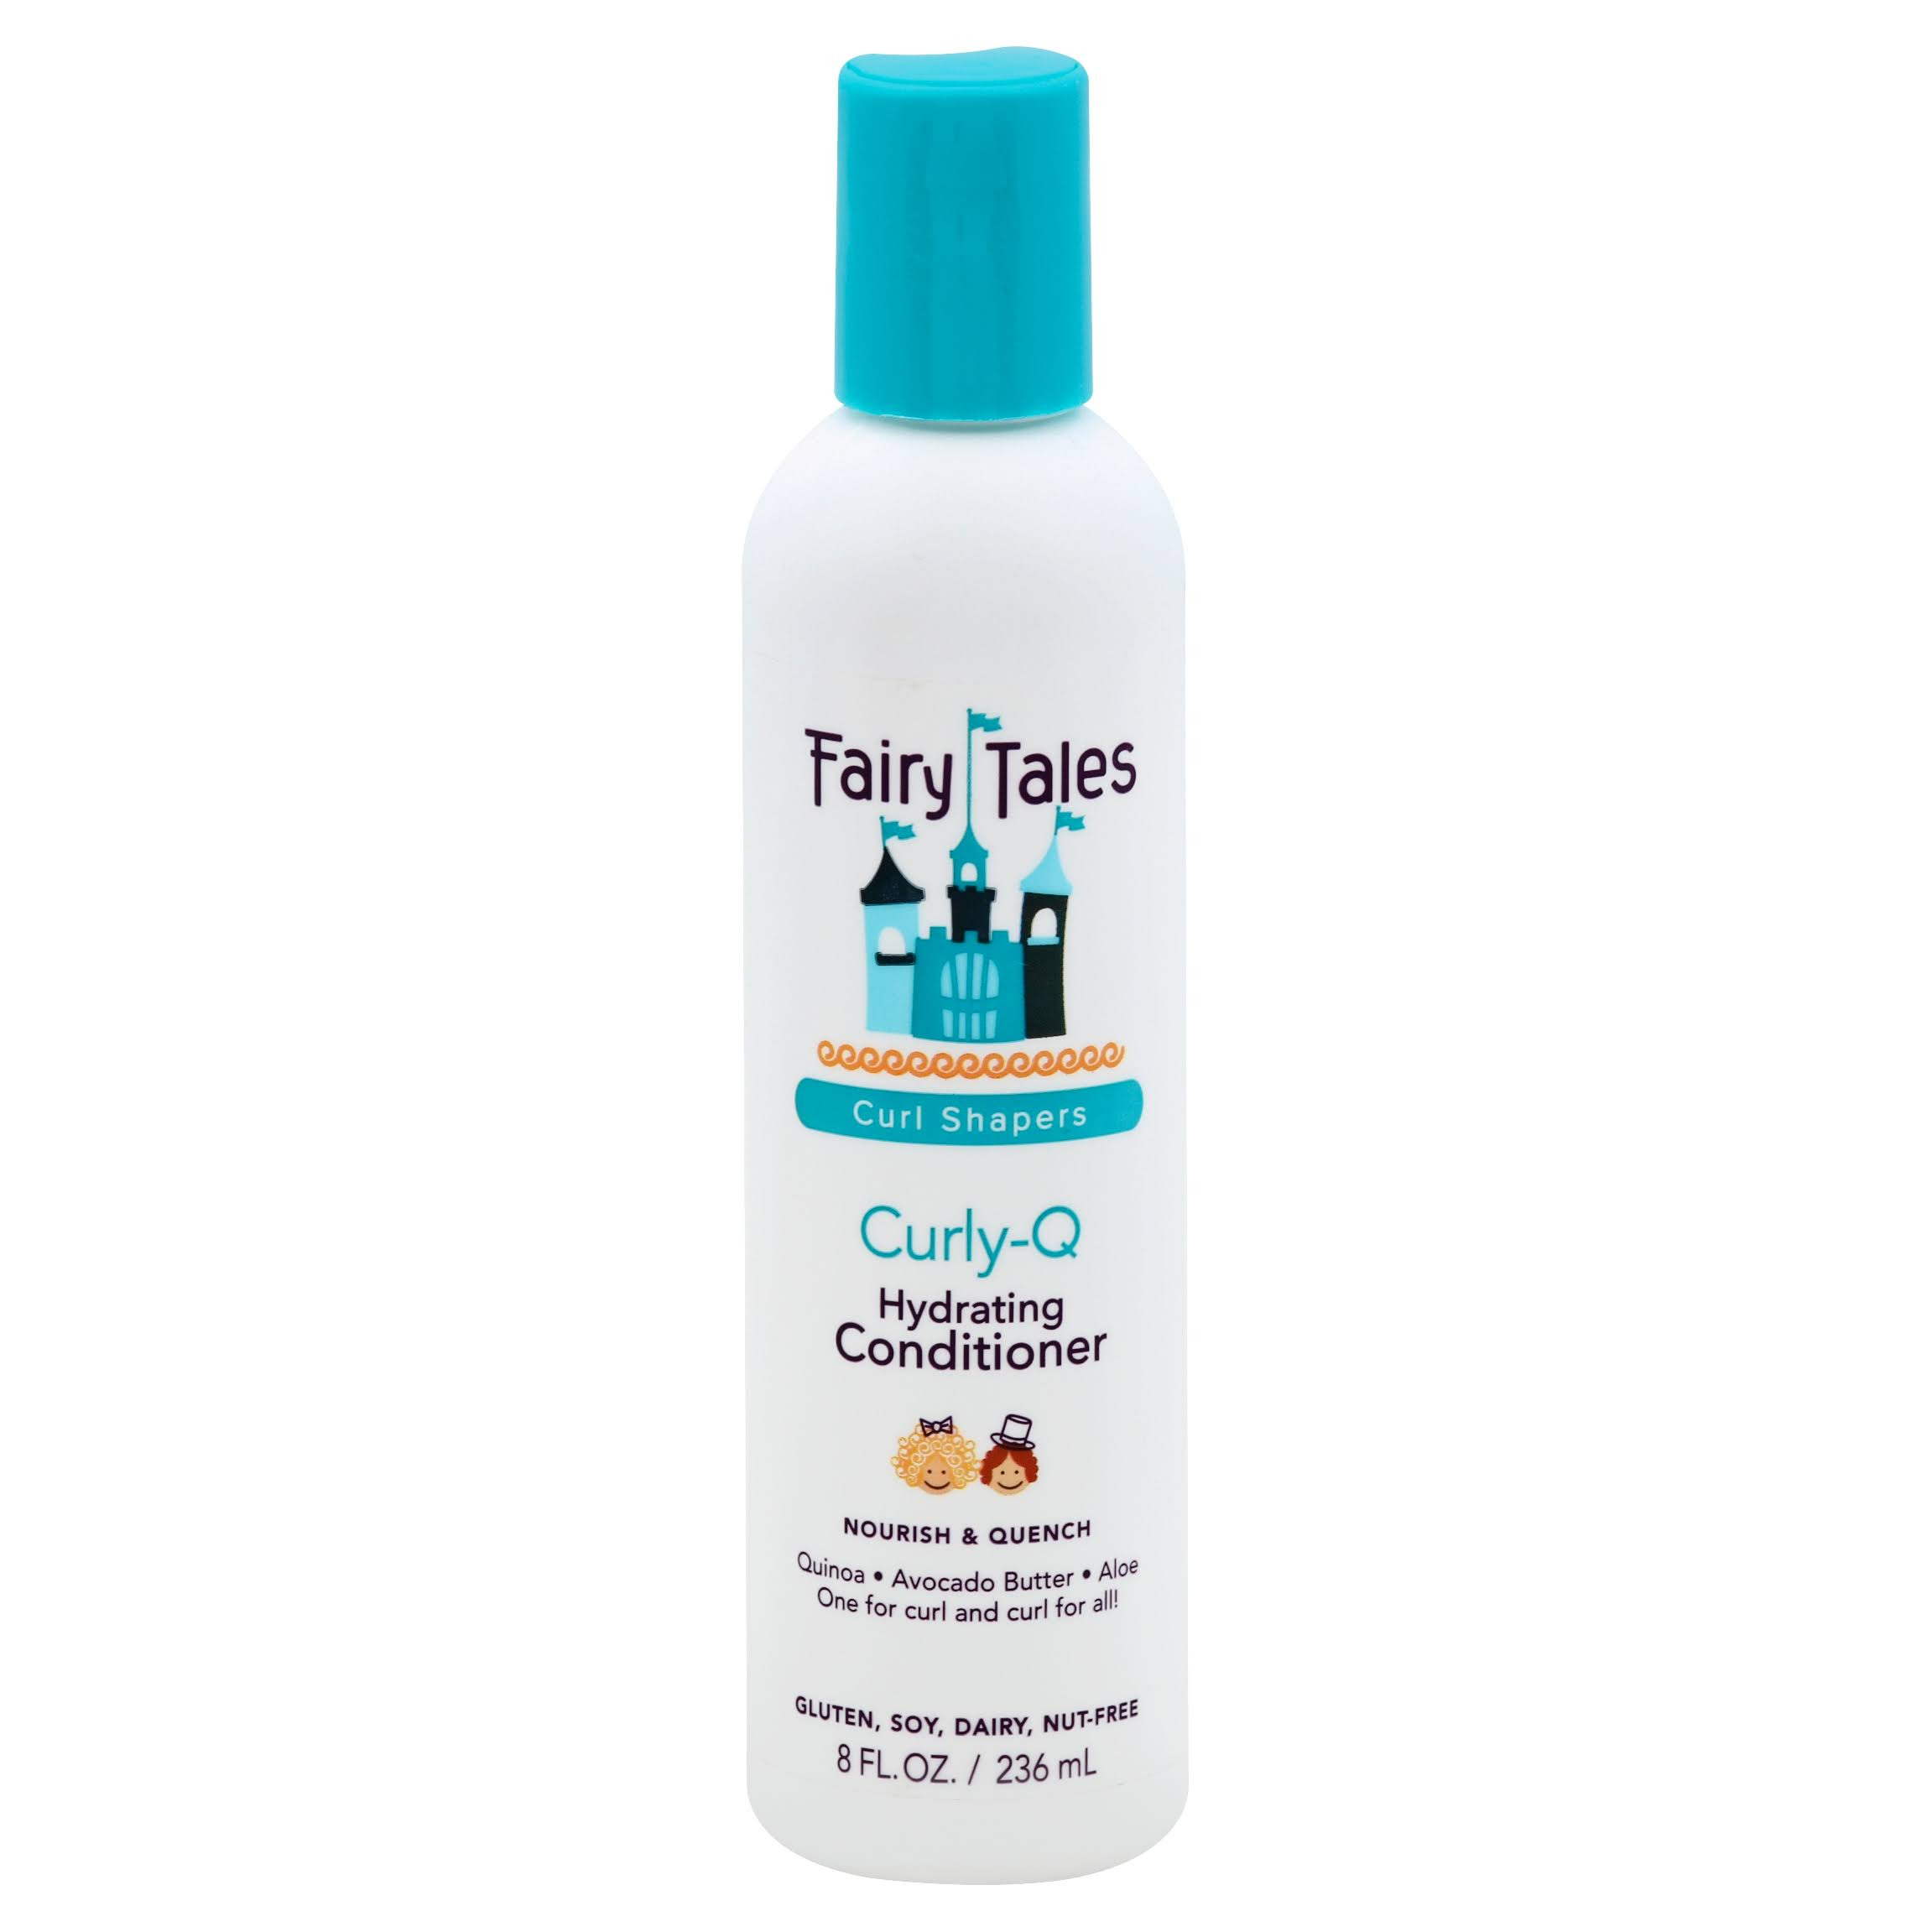 Fairy Tales Hair Care Curly-Q Hydrating Conditioner - 8 fl oz